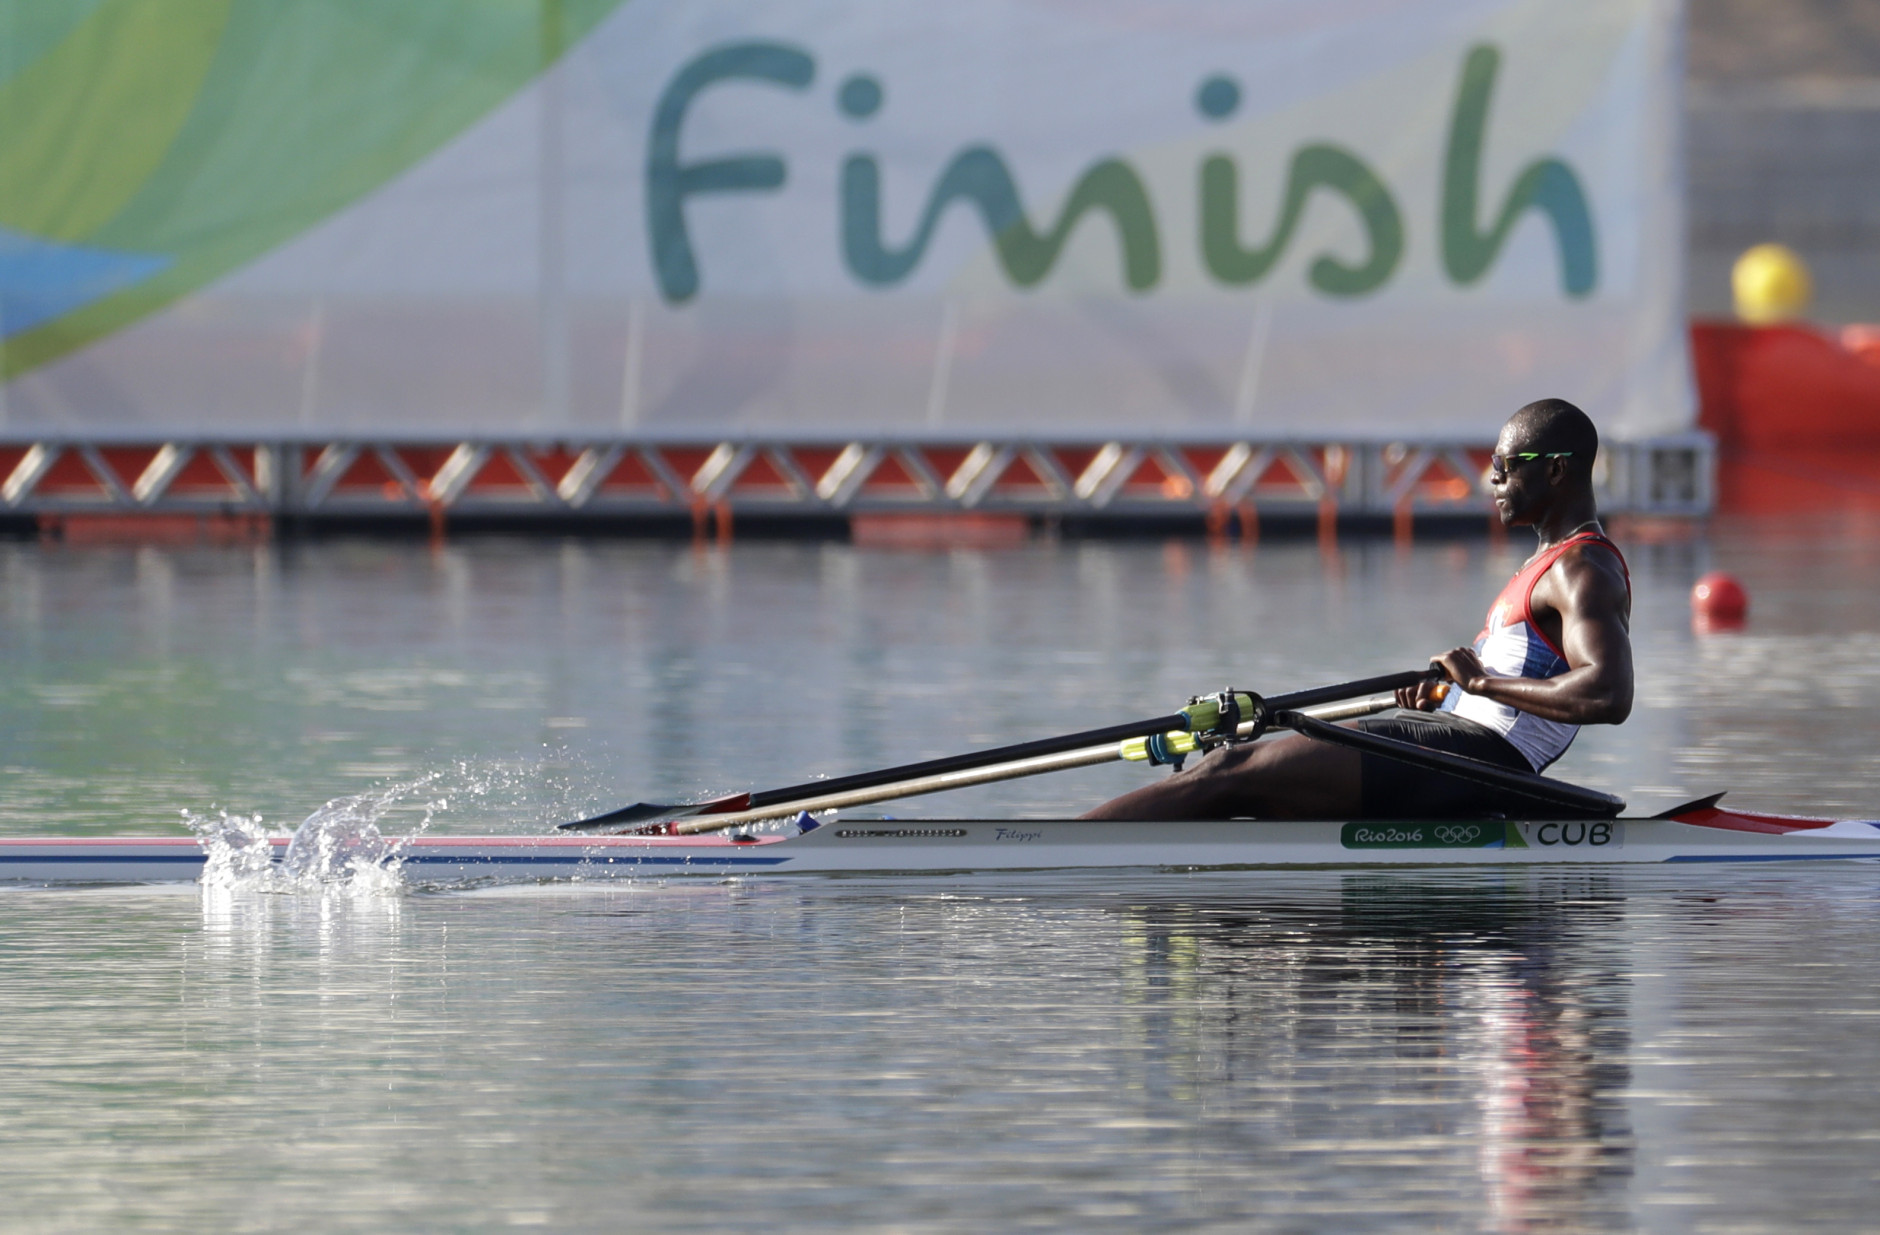 Angel Fournier Rodriguez, of Cuba, competes in the men's single scull heat during the 2016 Summer Olympics in Rio de Janeiro, Brazil, Saturday, Aug. 6, 2016. (AP Photo/Andre Penner)